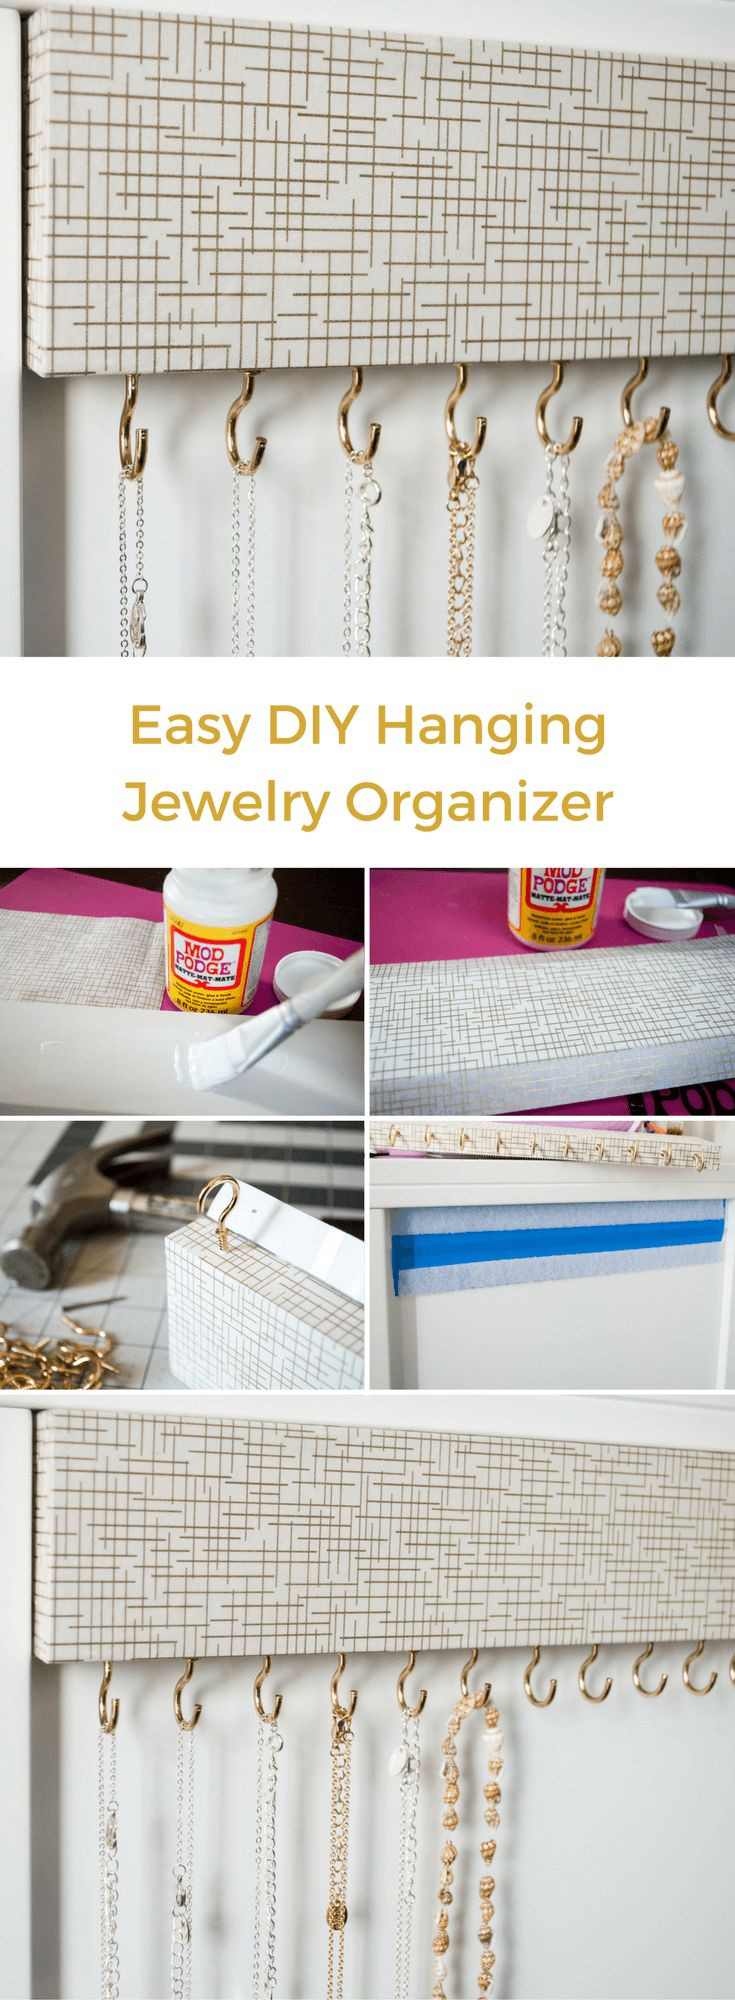 DIY Jewelry organizer for tangle-free necklaces. Cover wood with decorative paper, screw in cup hooks and mount. See how to make your own for less than $10! [ Jewelry Organizer - Necklace Holder - Jewelry Holder Wall - Wood Jewelry Hanger - Necklace Stora